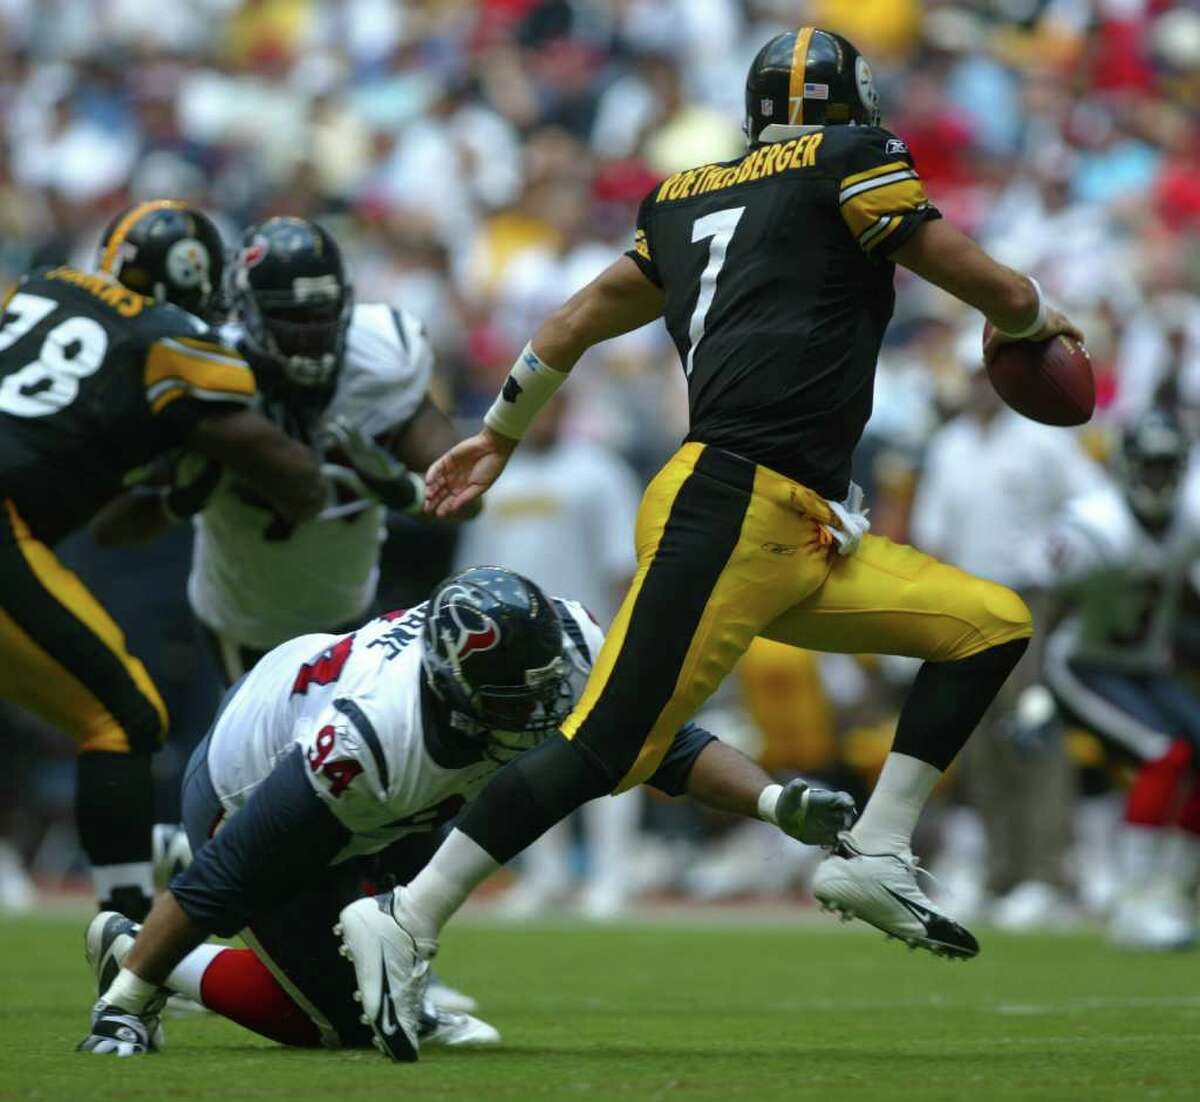 Steelers QB Ben Roethlisberger is an imposing figure in the pocket and on the run.